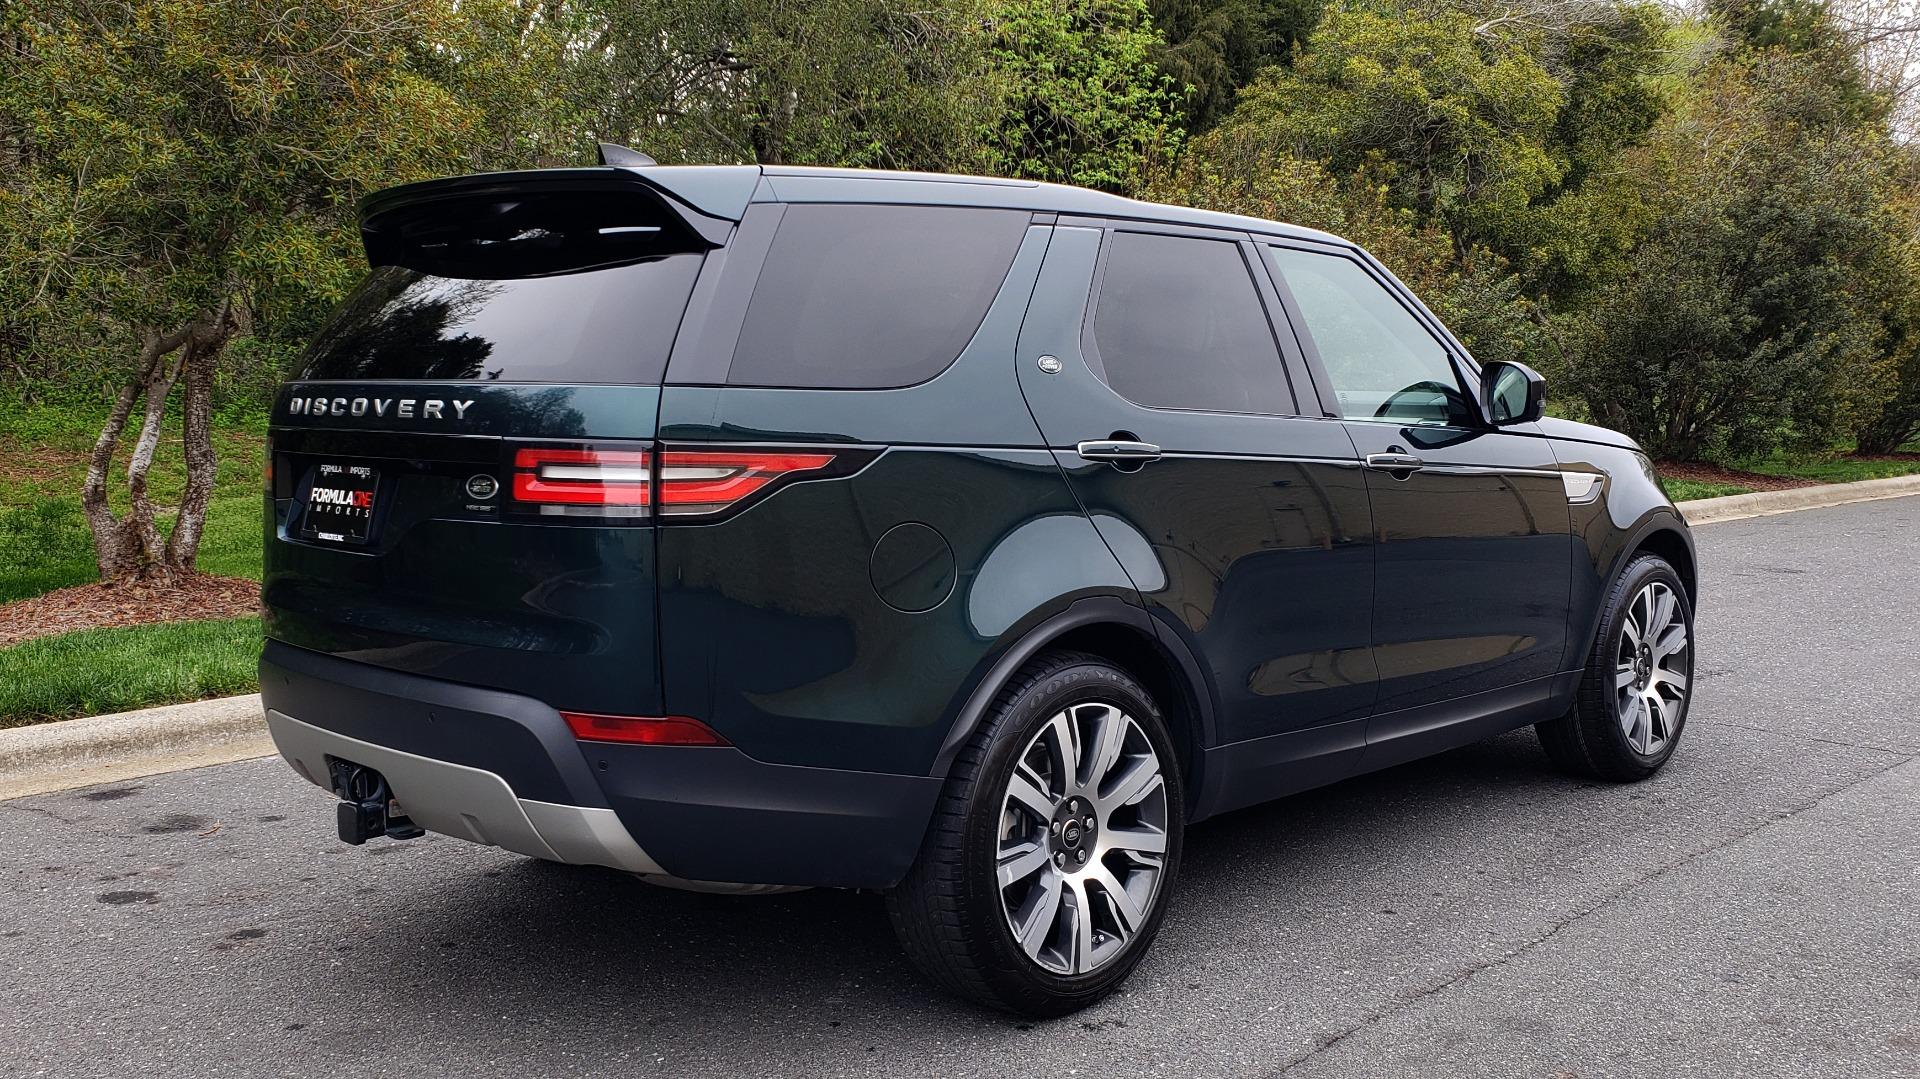 Used 2017 Land Rover DISCOVERY HSE LUXURY / 4WD / NAV / VISION ASST / DRIVE PKG / MERIDIAN for sale Sold at Formula Imports in Charlotte NC 28227 7